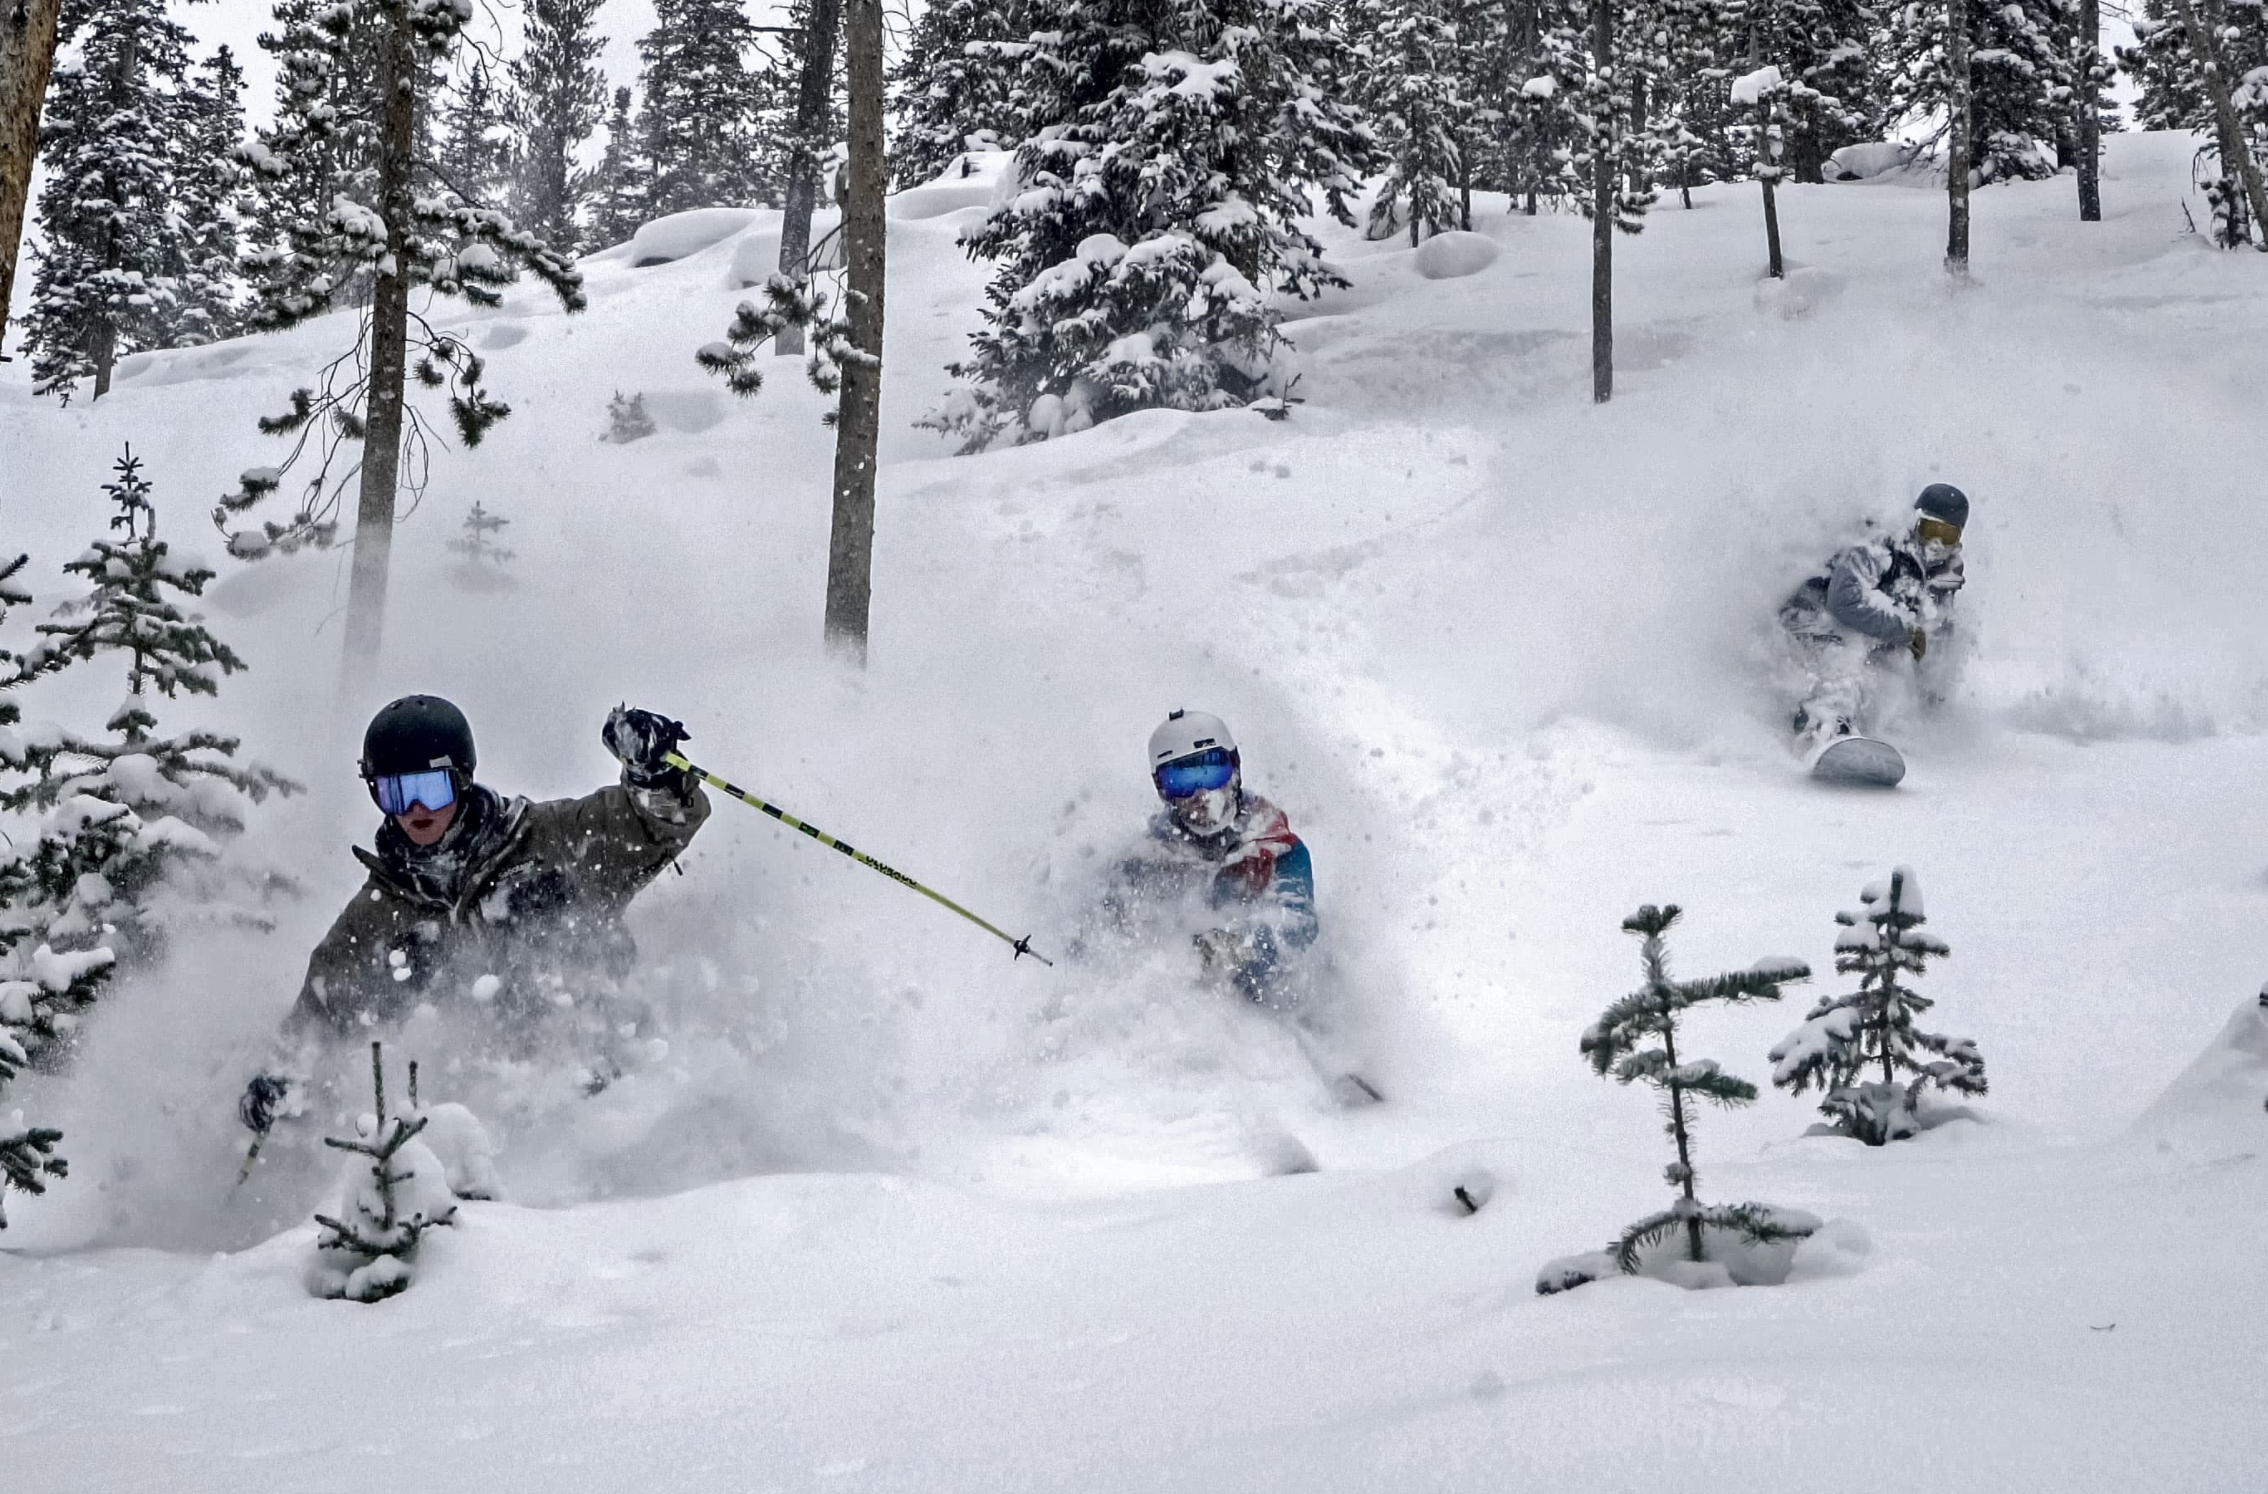 Skiing business goes tri-polar with Intrawest deal